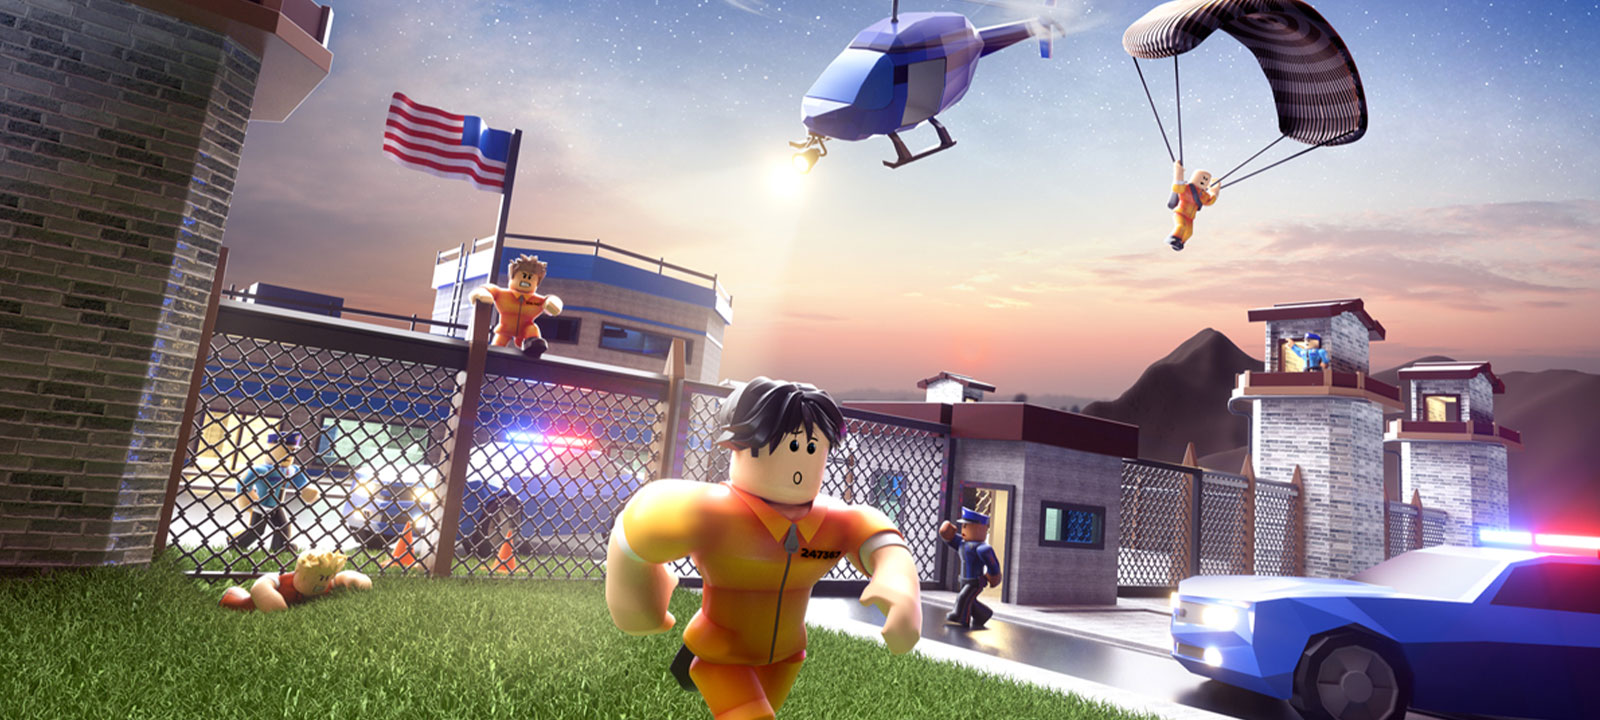 Roblox characters escaping from jail while police chase after them in Jailbreak game